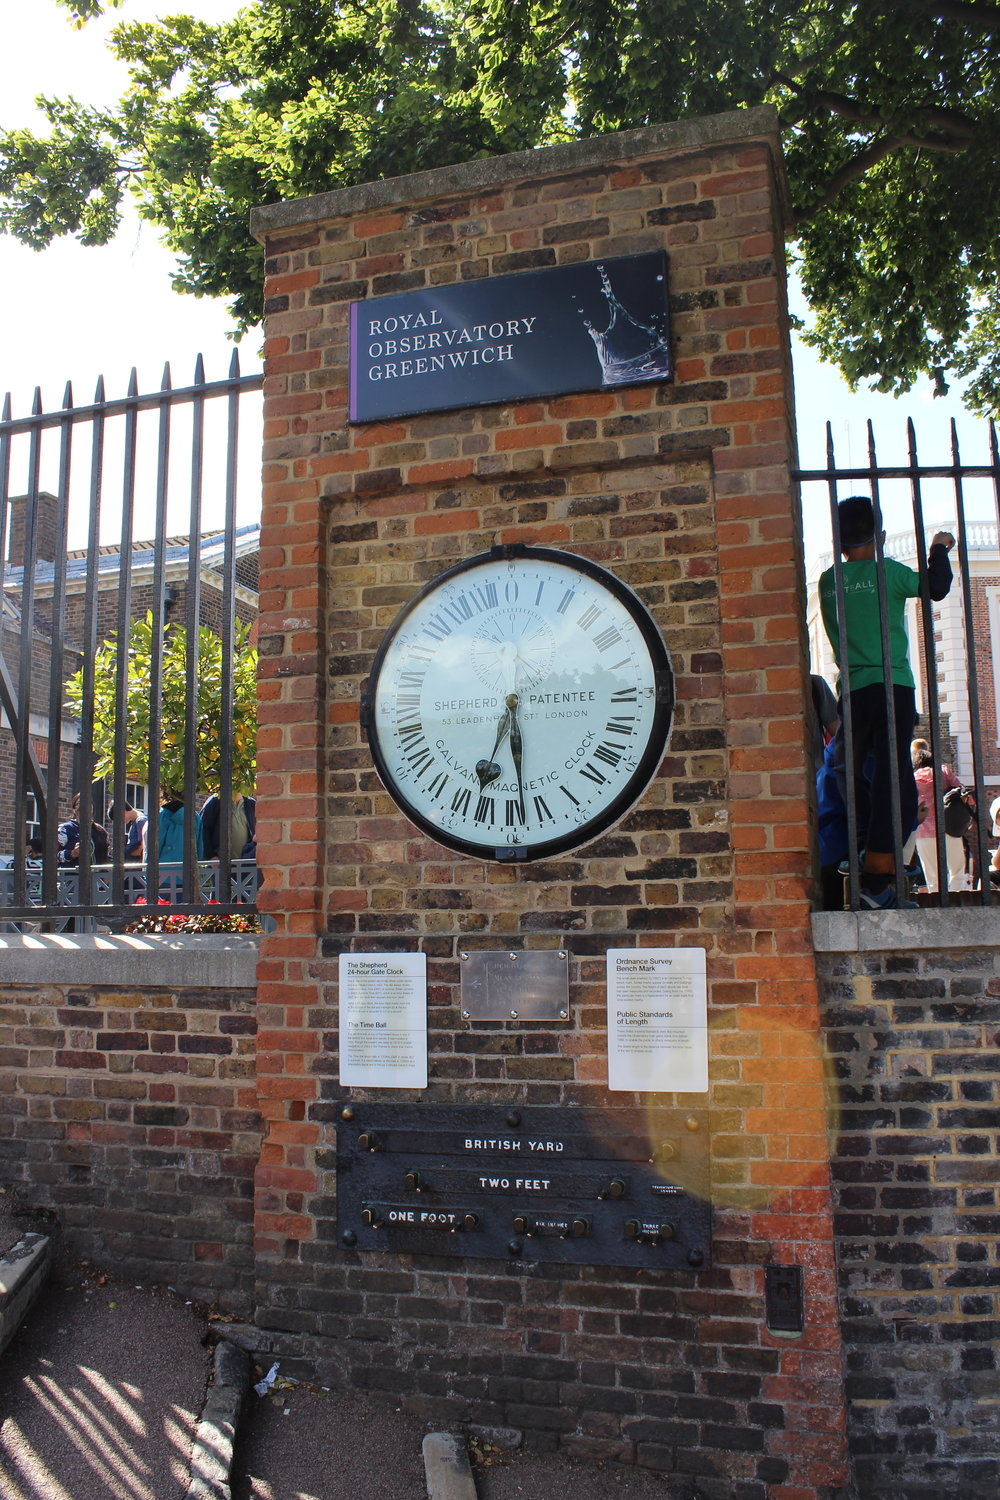 royal-observatory-greenwich-clock